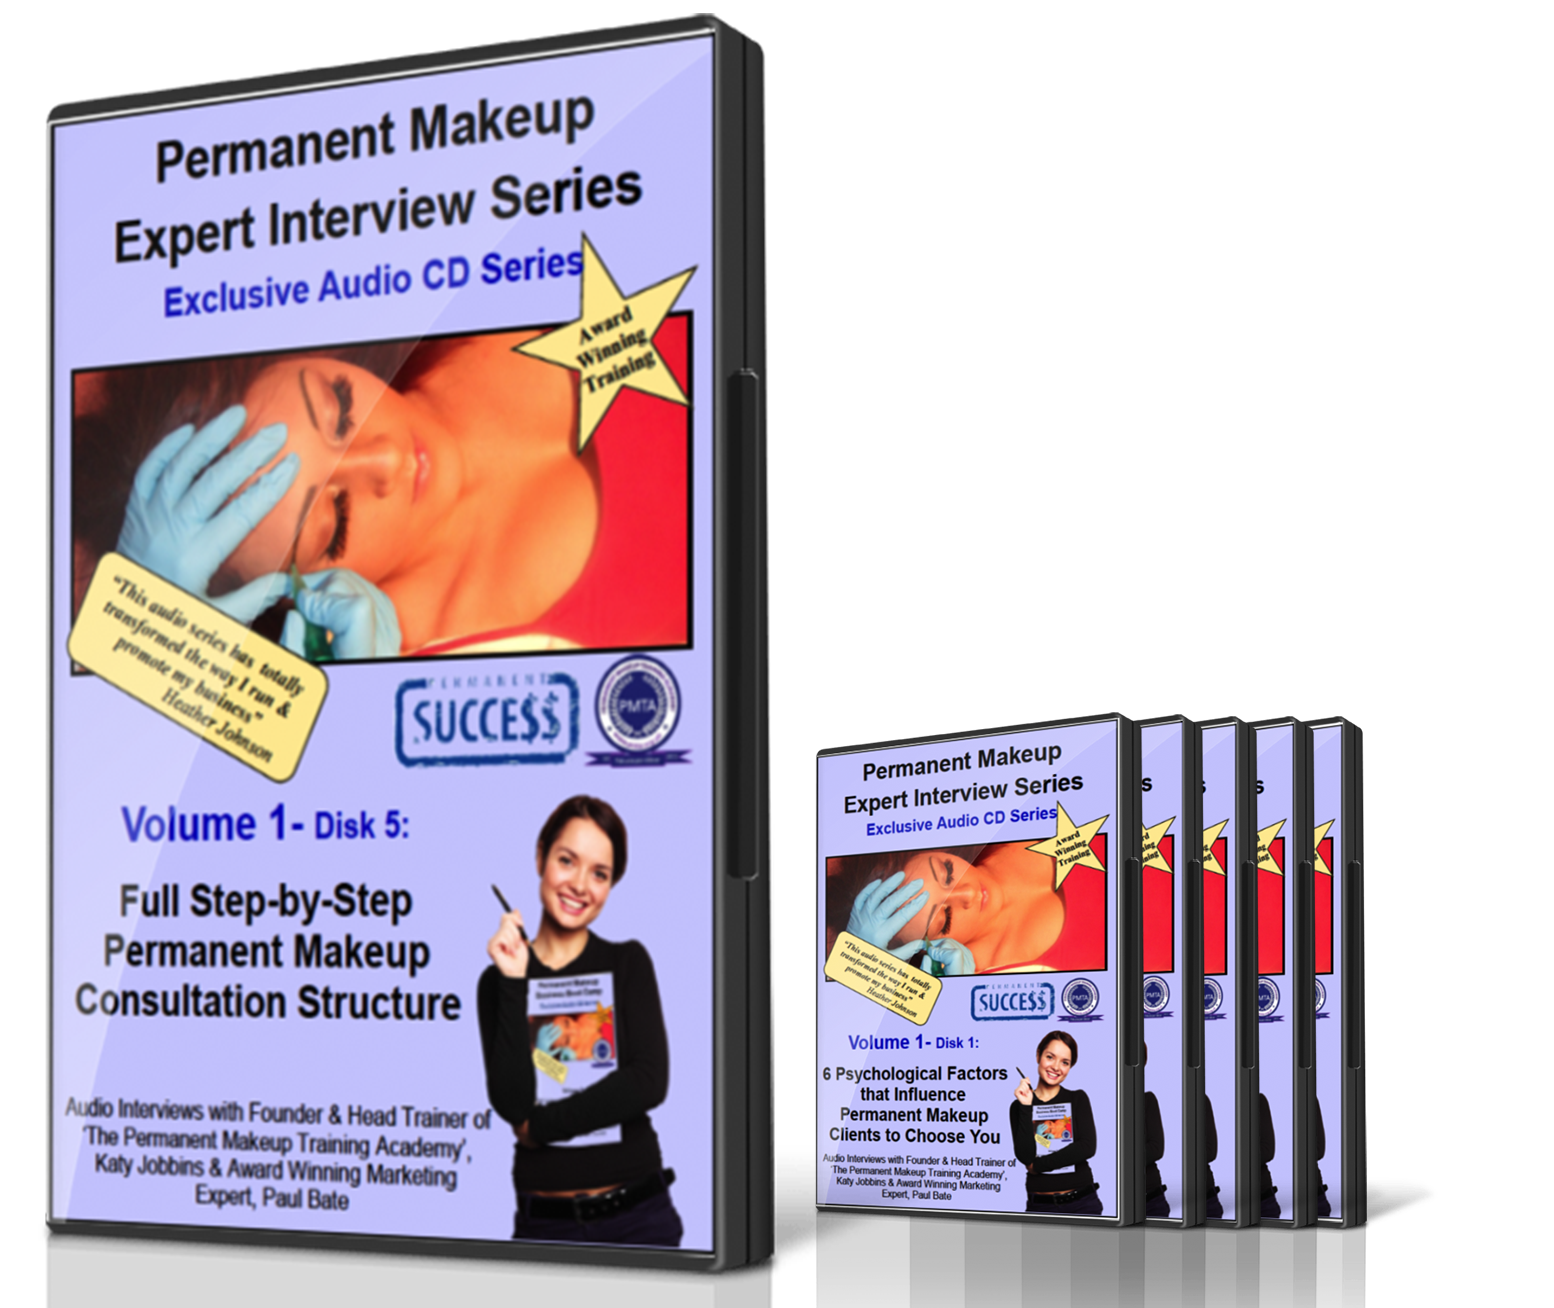 full-permanent-makeup-consultation-structure